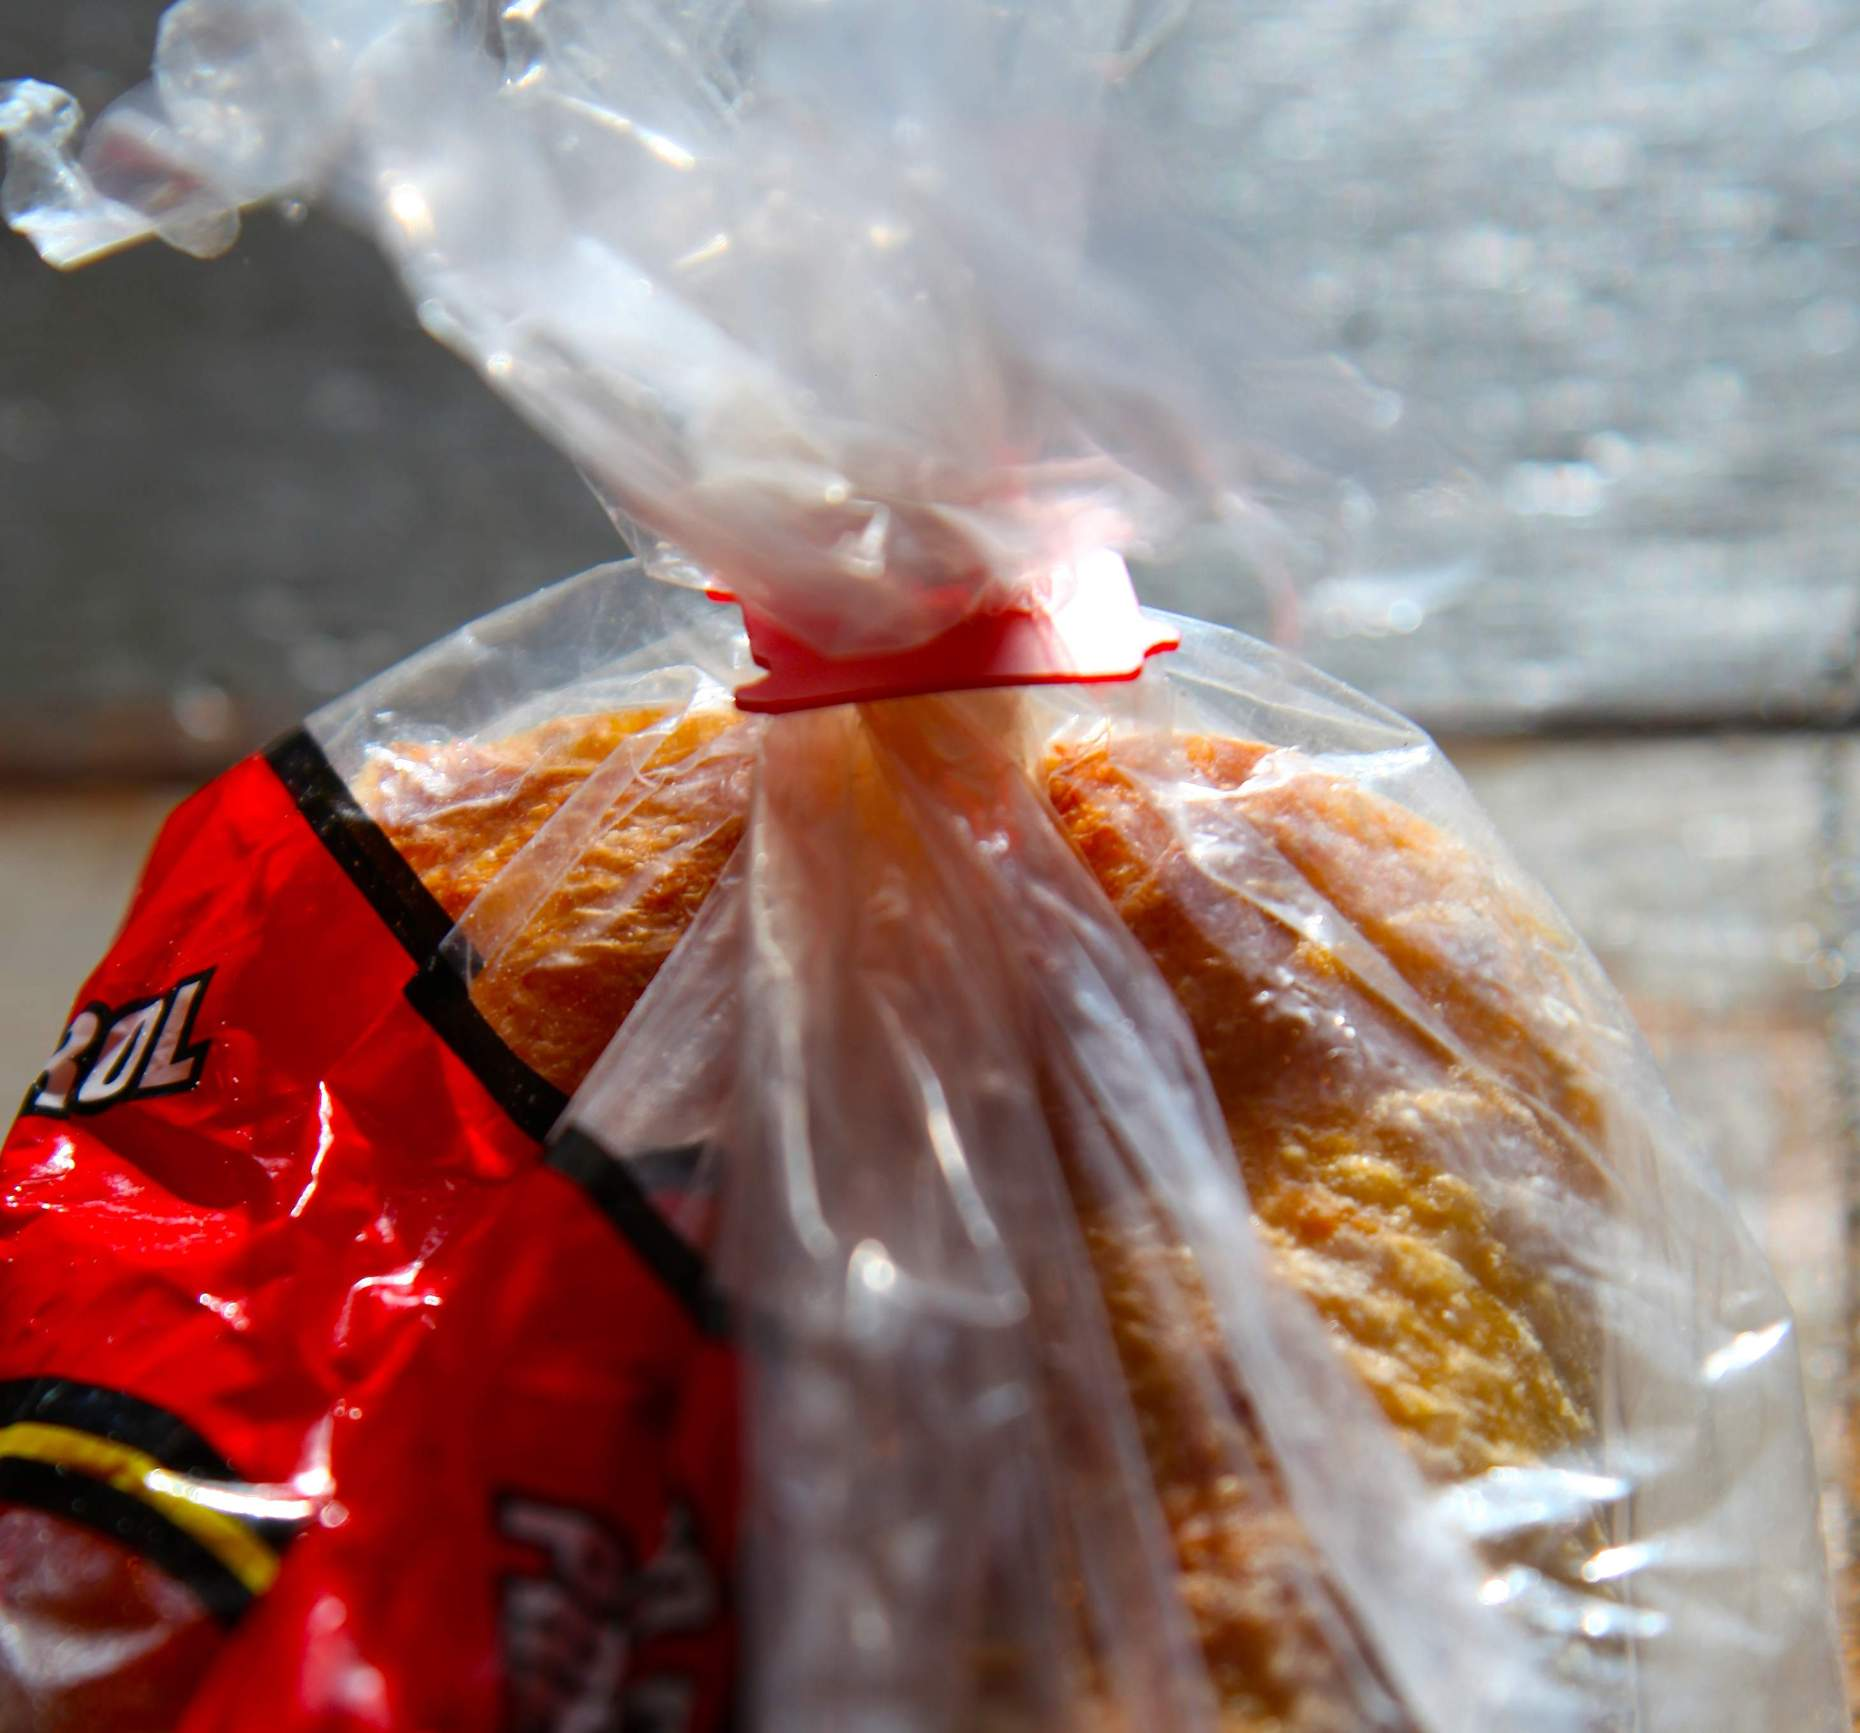 The little plastic bread clip